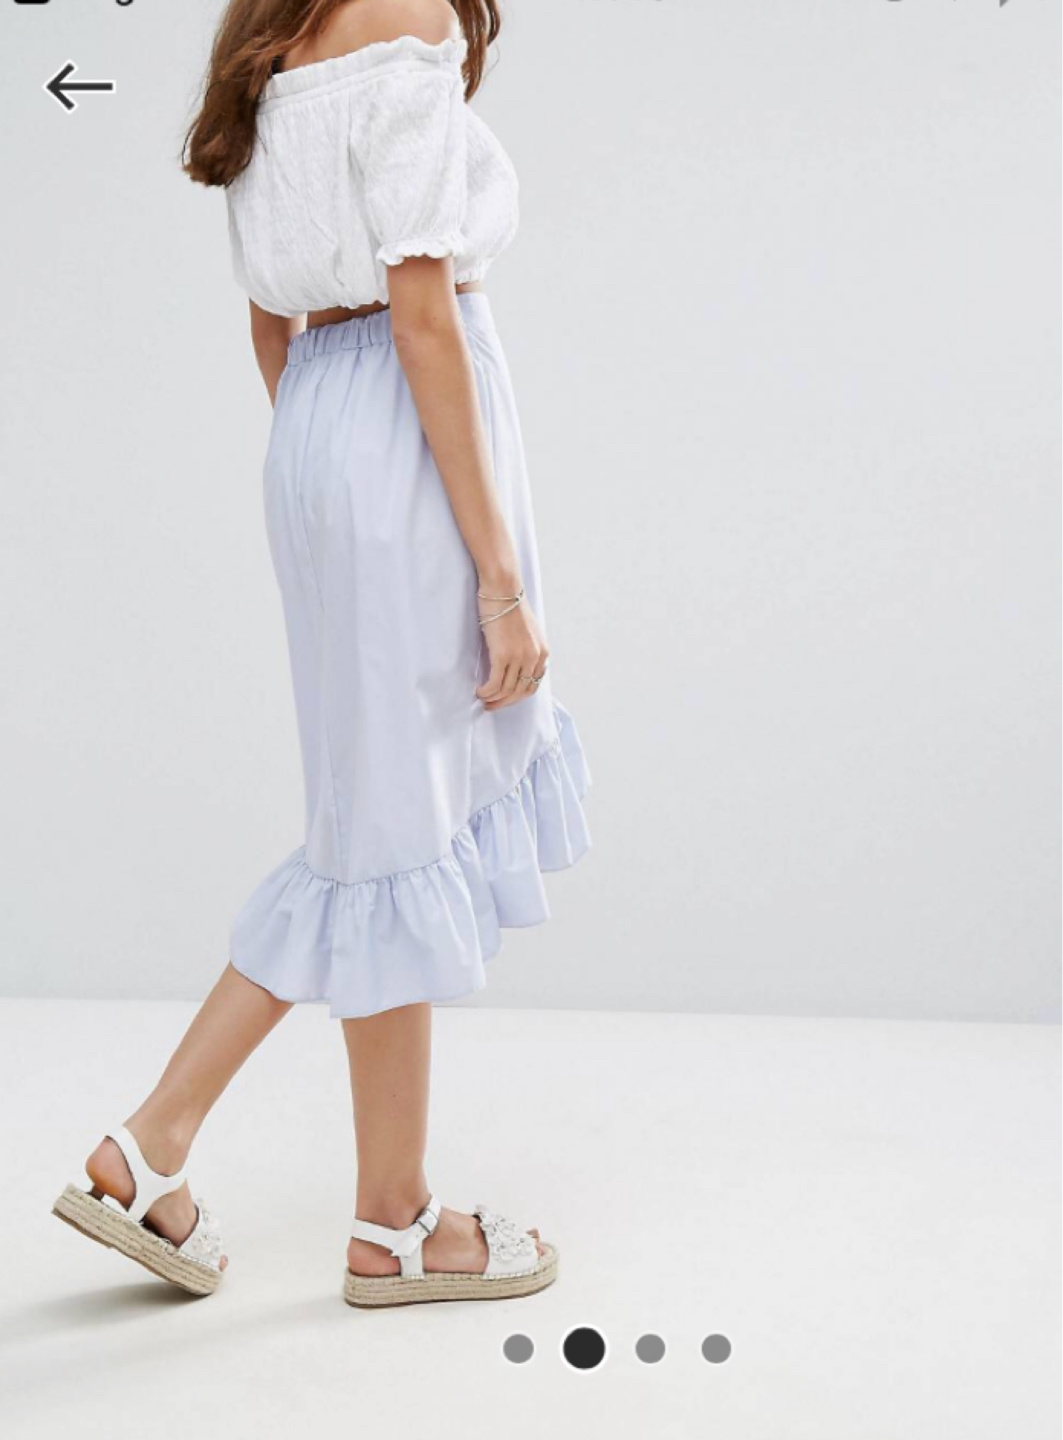 Women's skirts - MISS SELFRIDGE photo 2